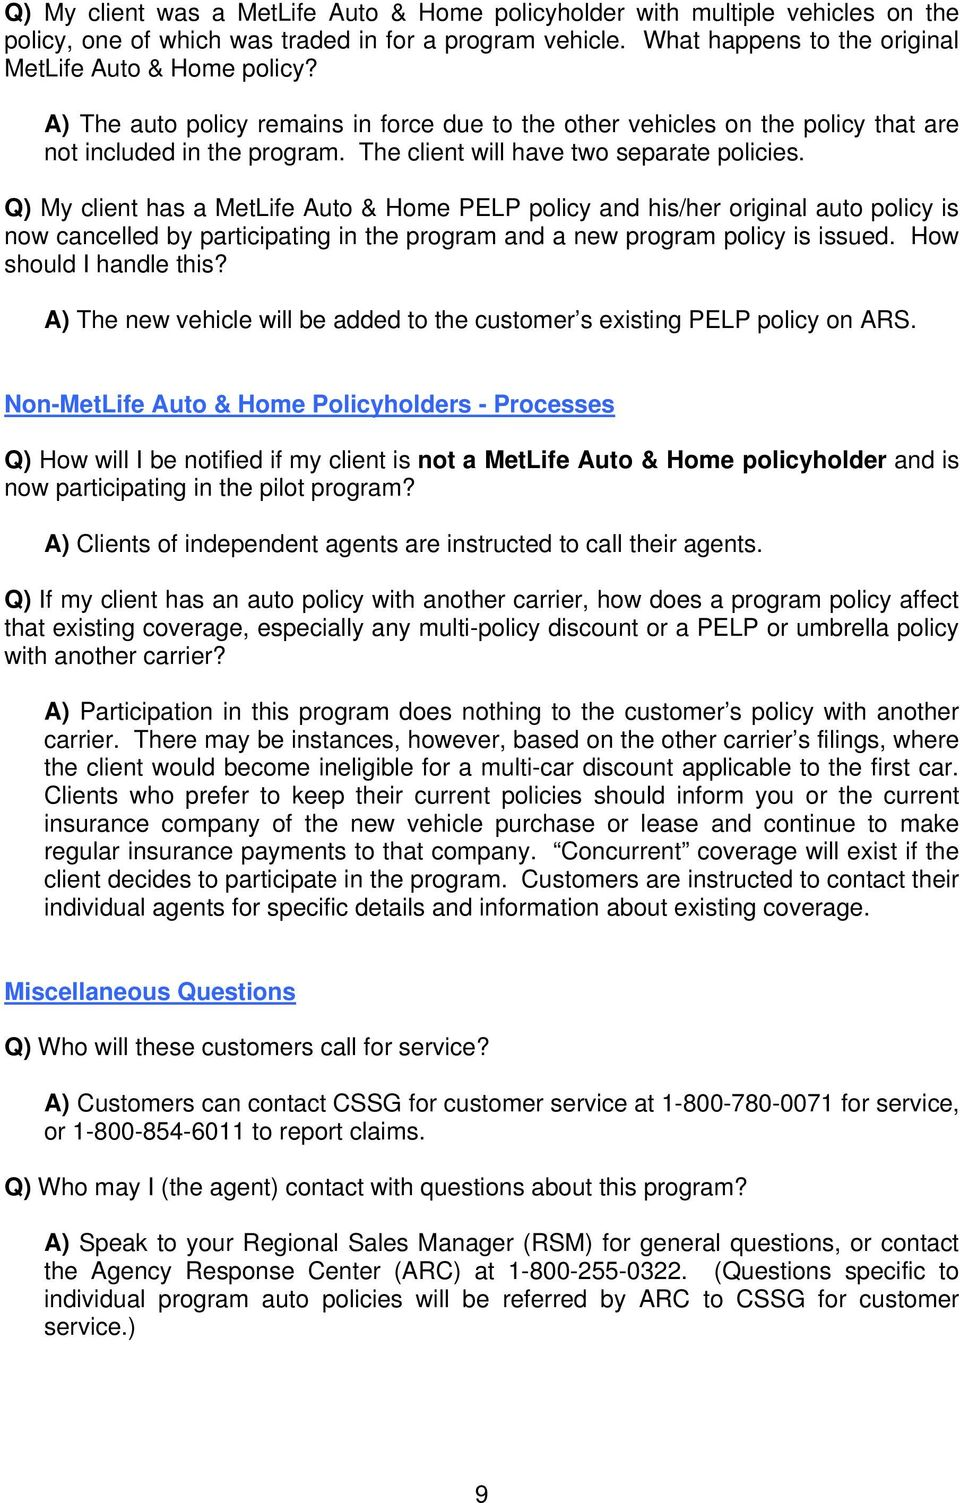 Q) My client has a MetLife Auto & Home PELP policy and his/her original auto policy is now cancelled by participating in the program and a new program policy is issued. How should I handle this?